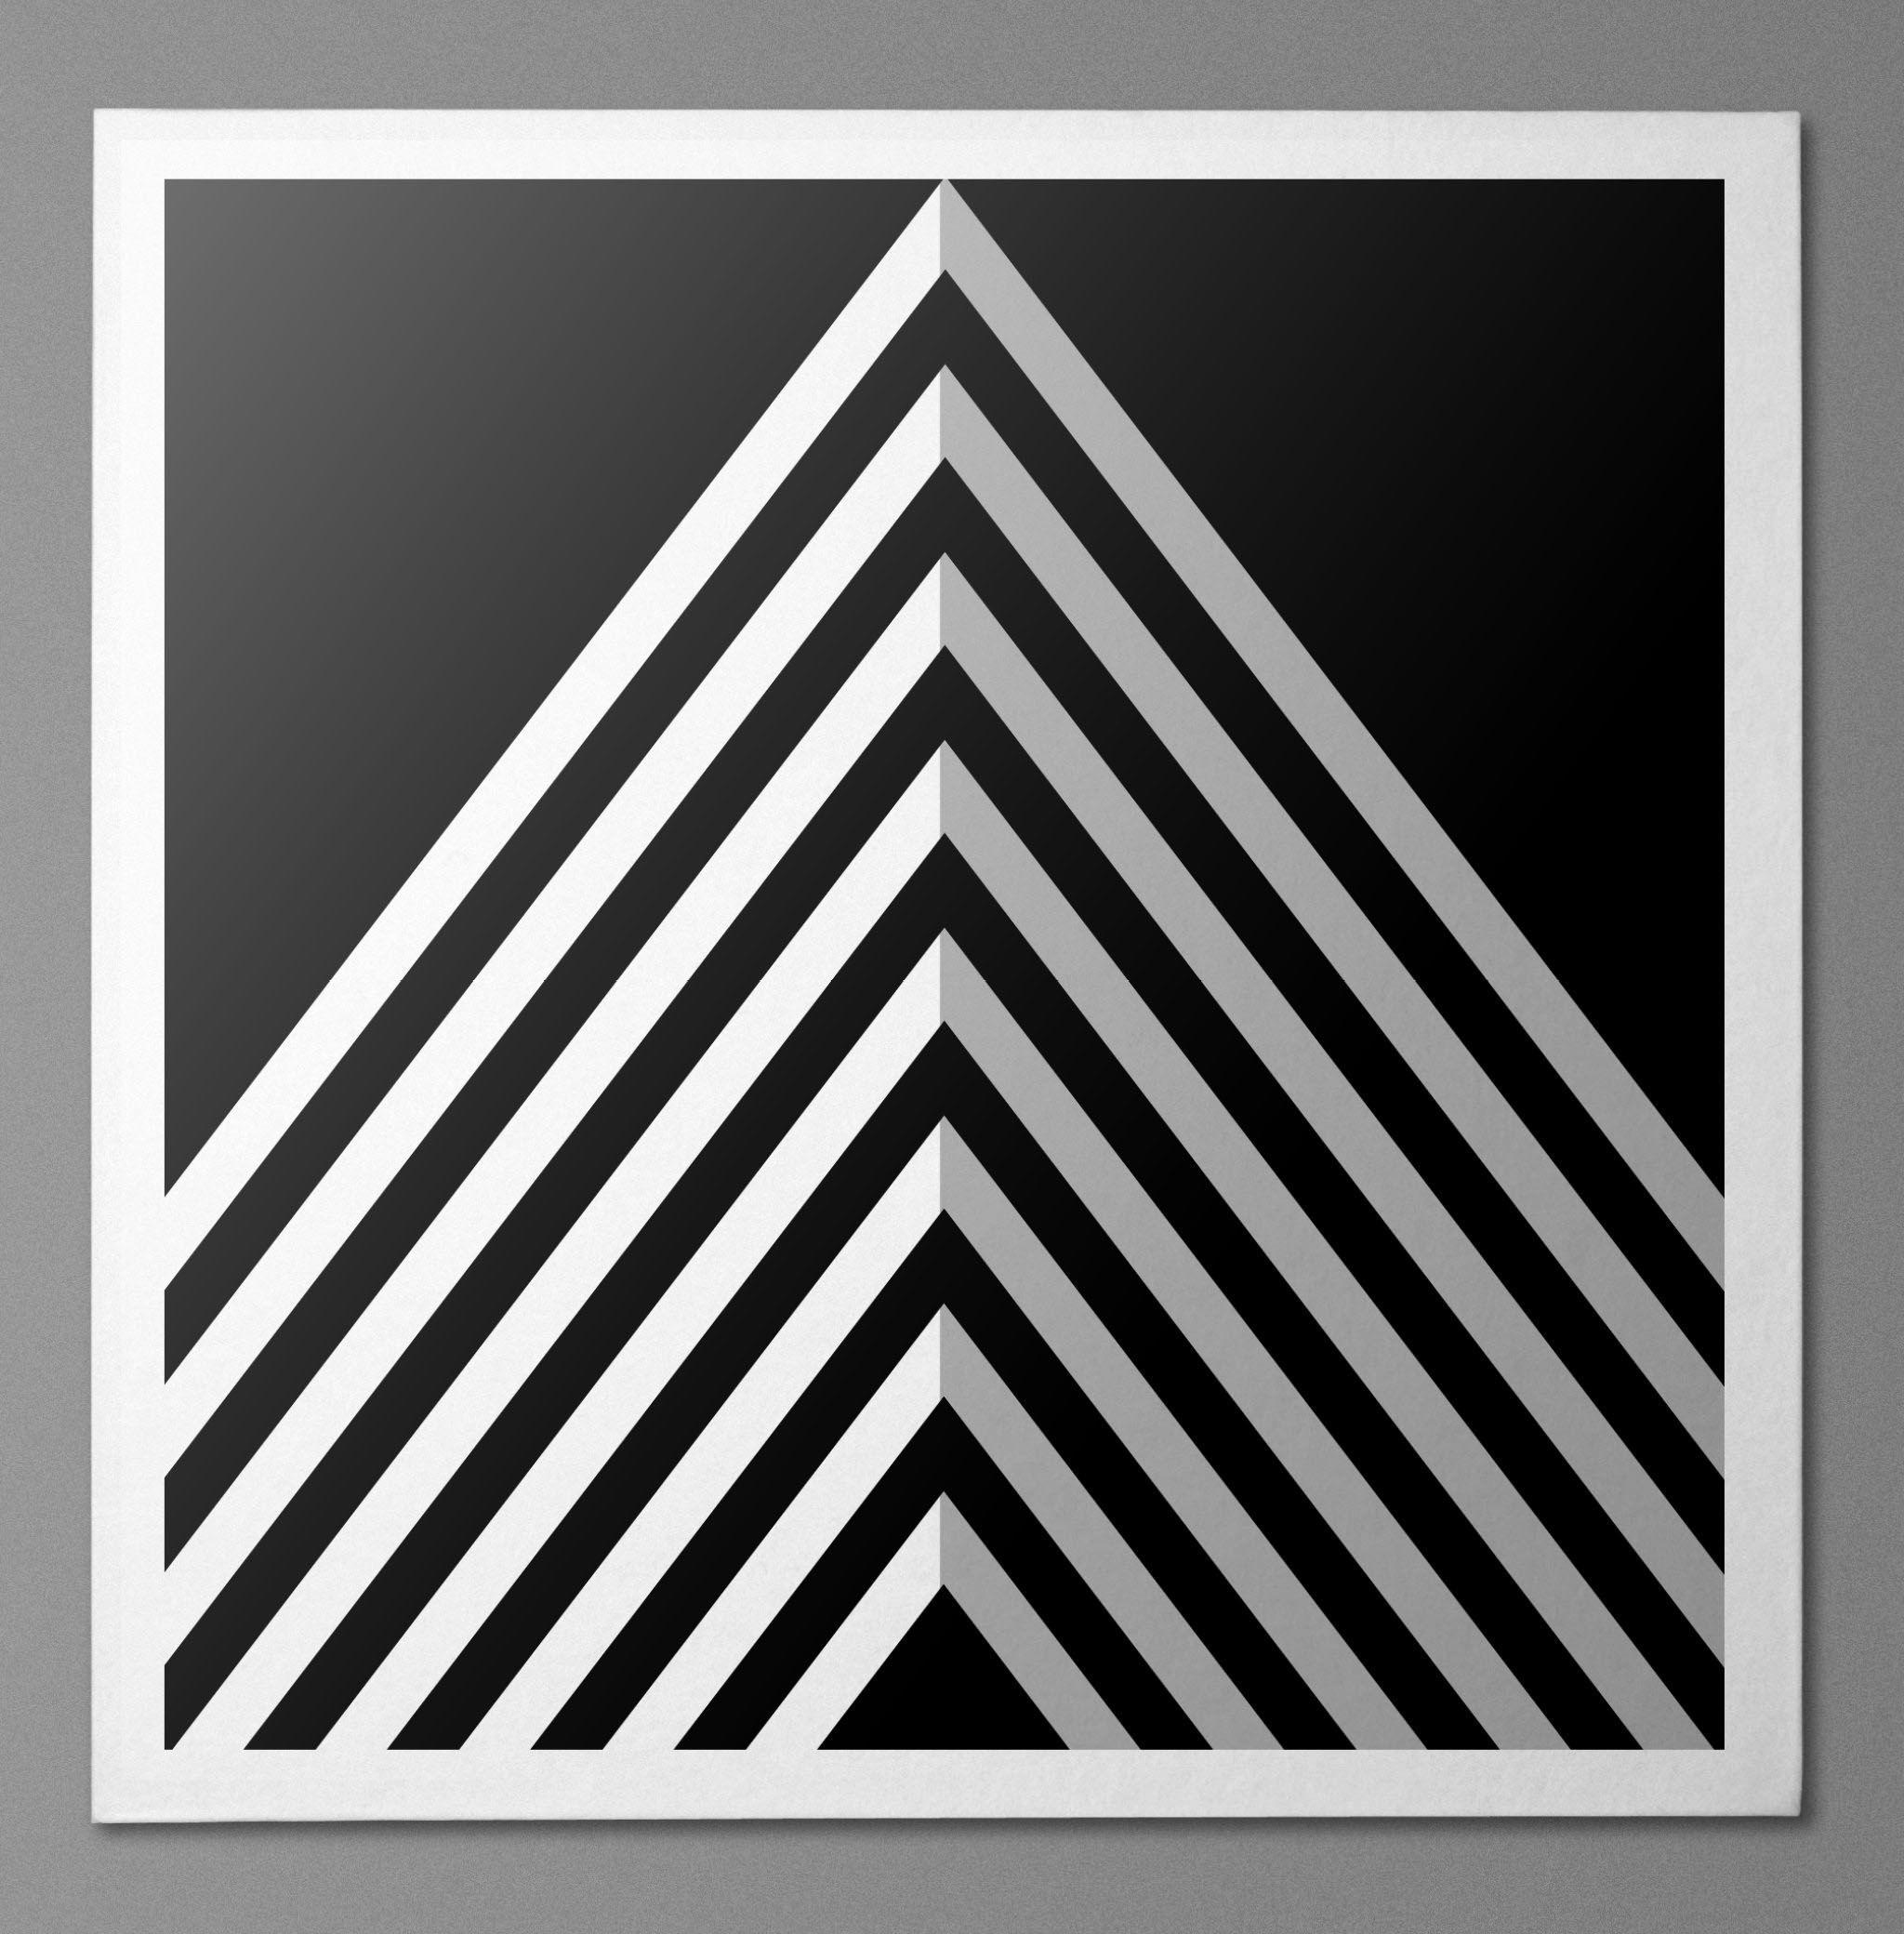 A Black And White Design For A Black And White Competition Symmetrical Balance Geometric Art Geometric